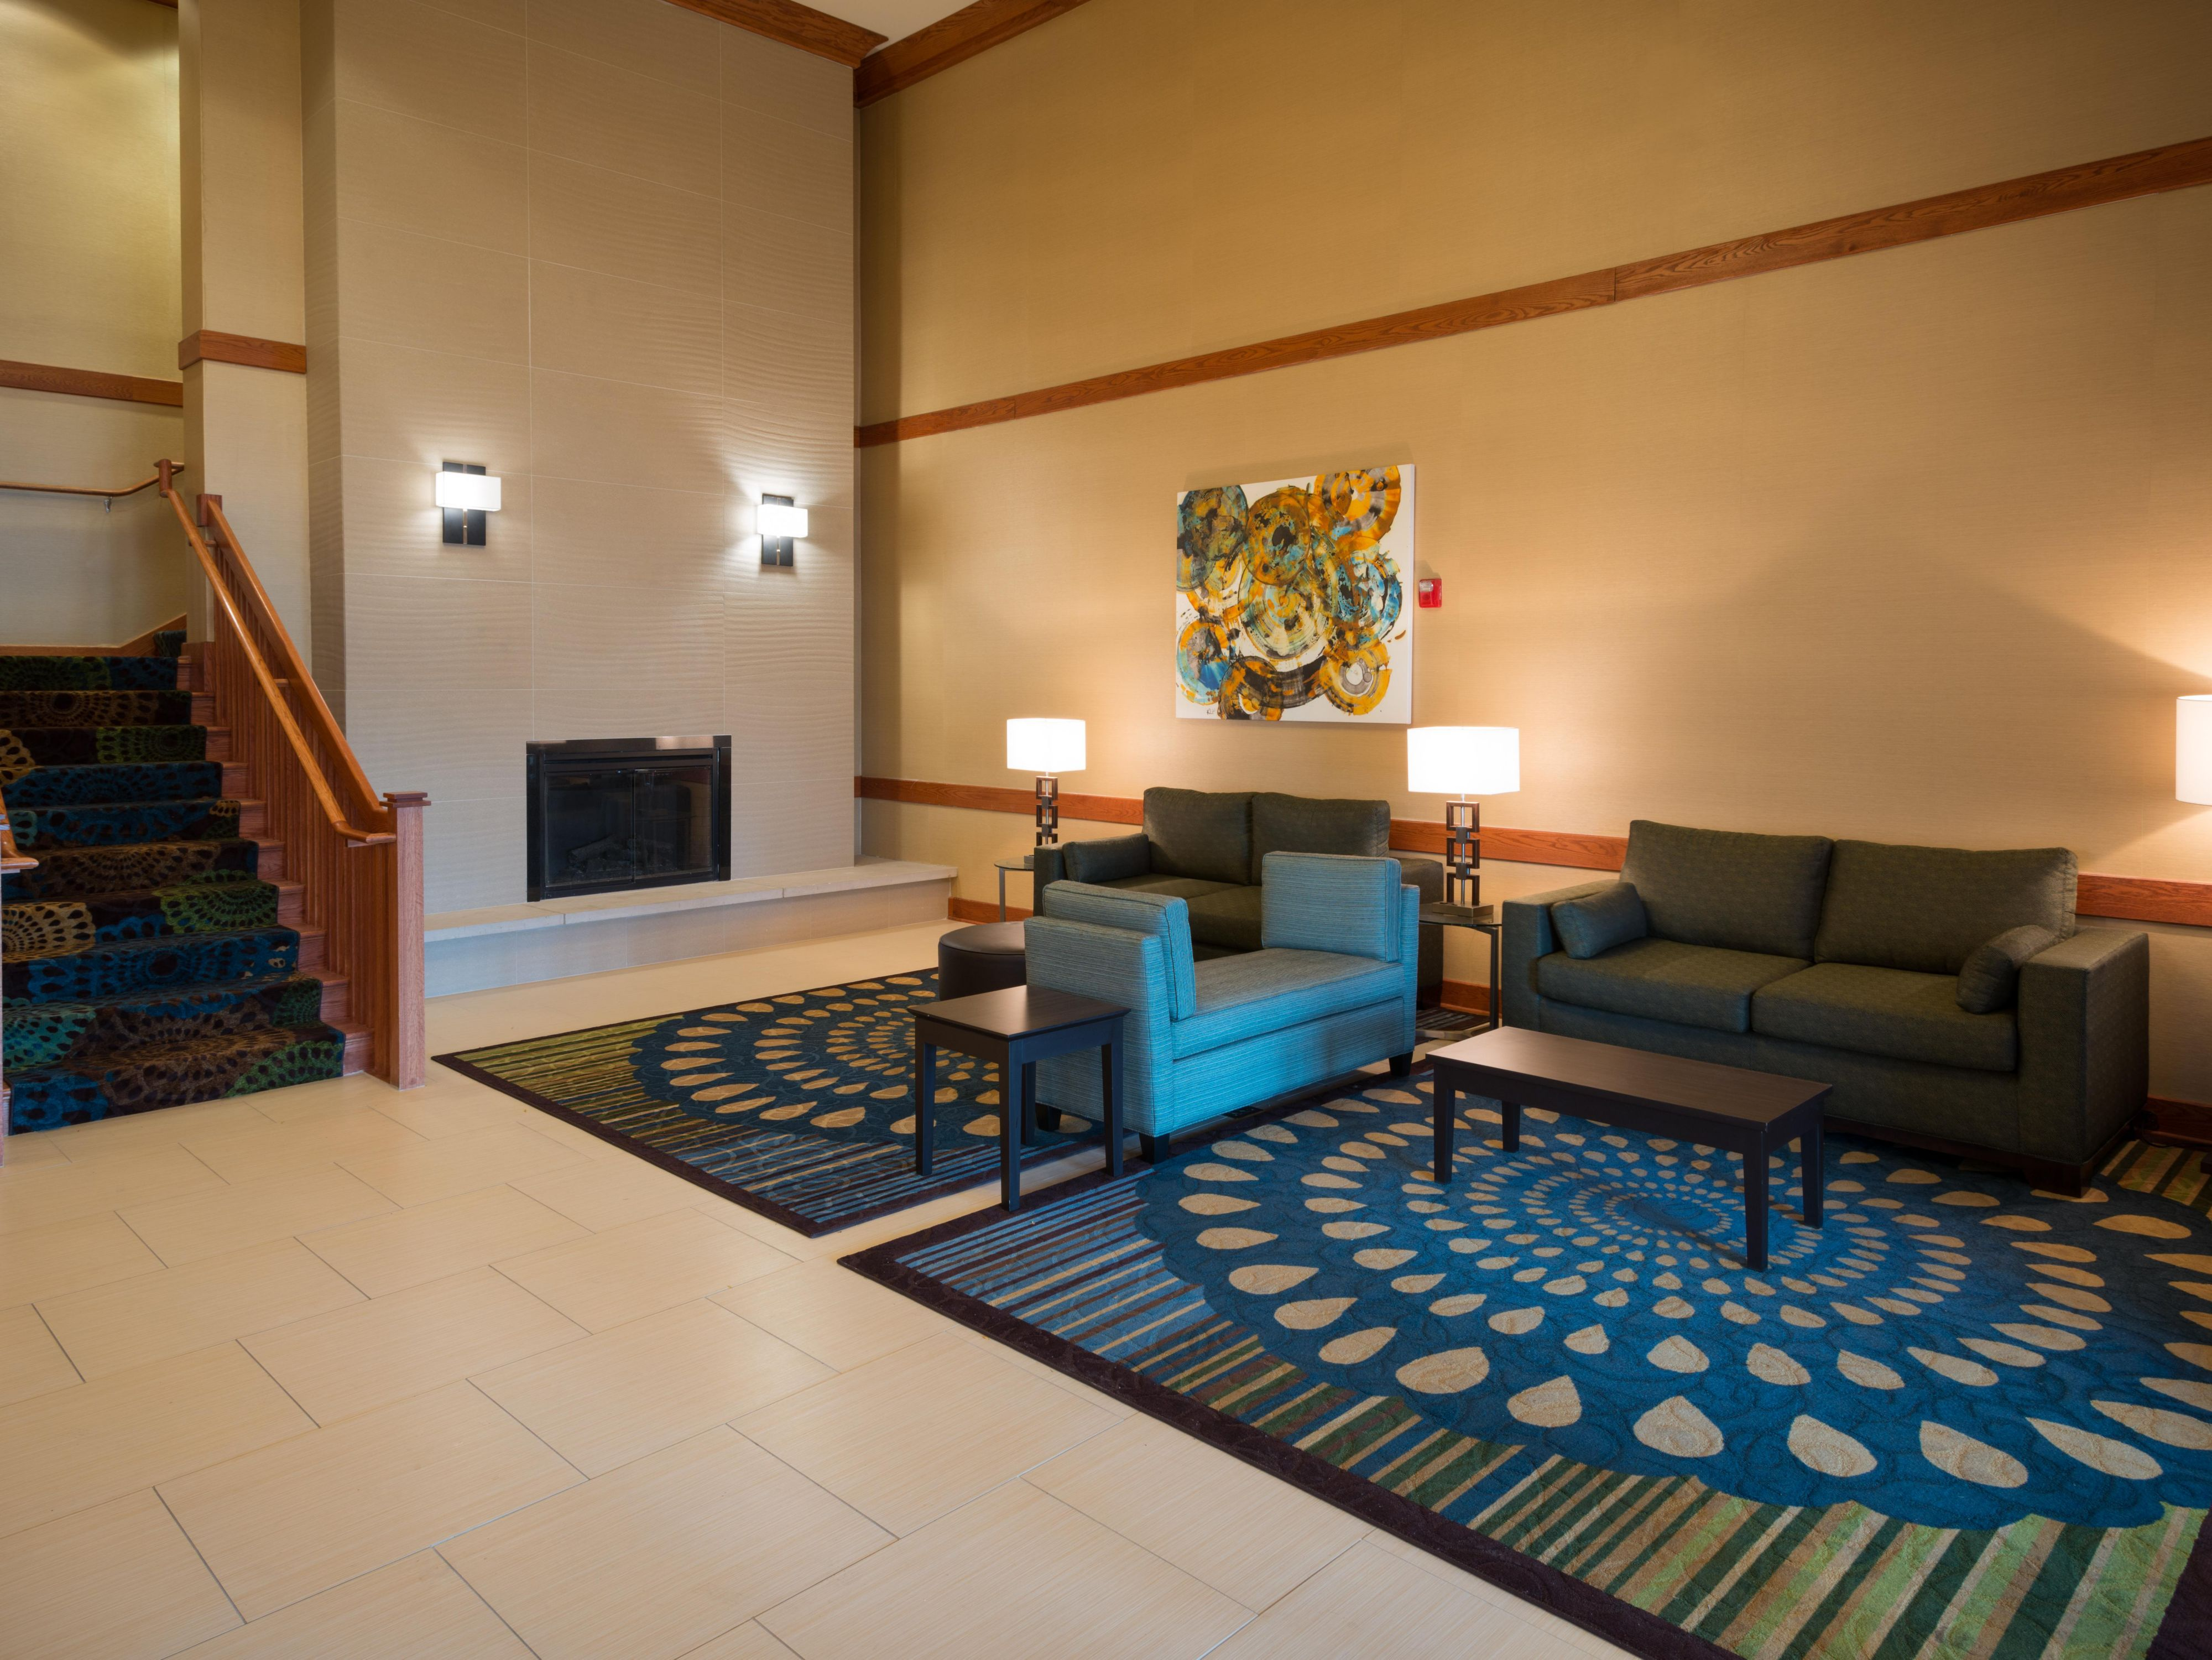 Newly remodeled lobby at the Holday Inn Express by O'Hare Airport